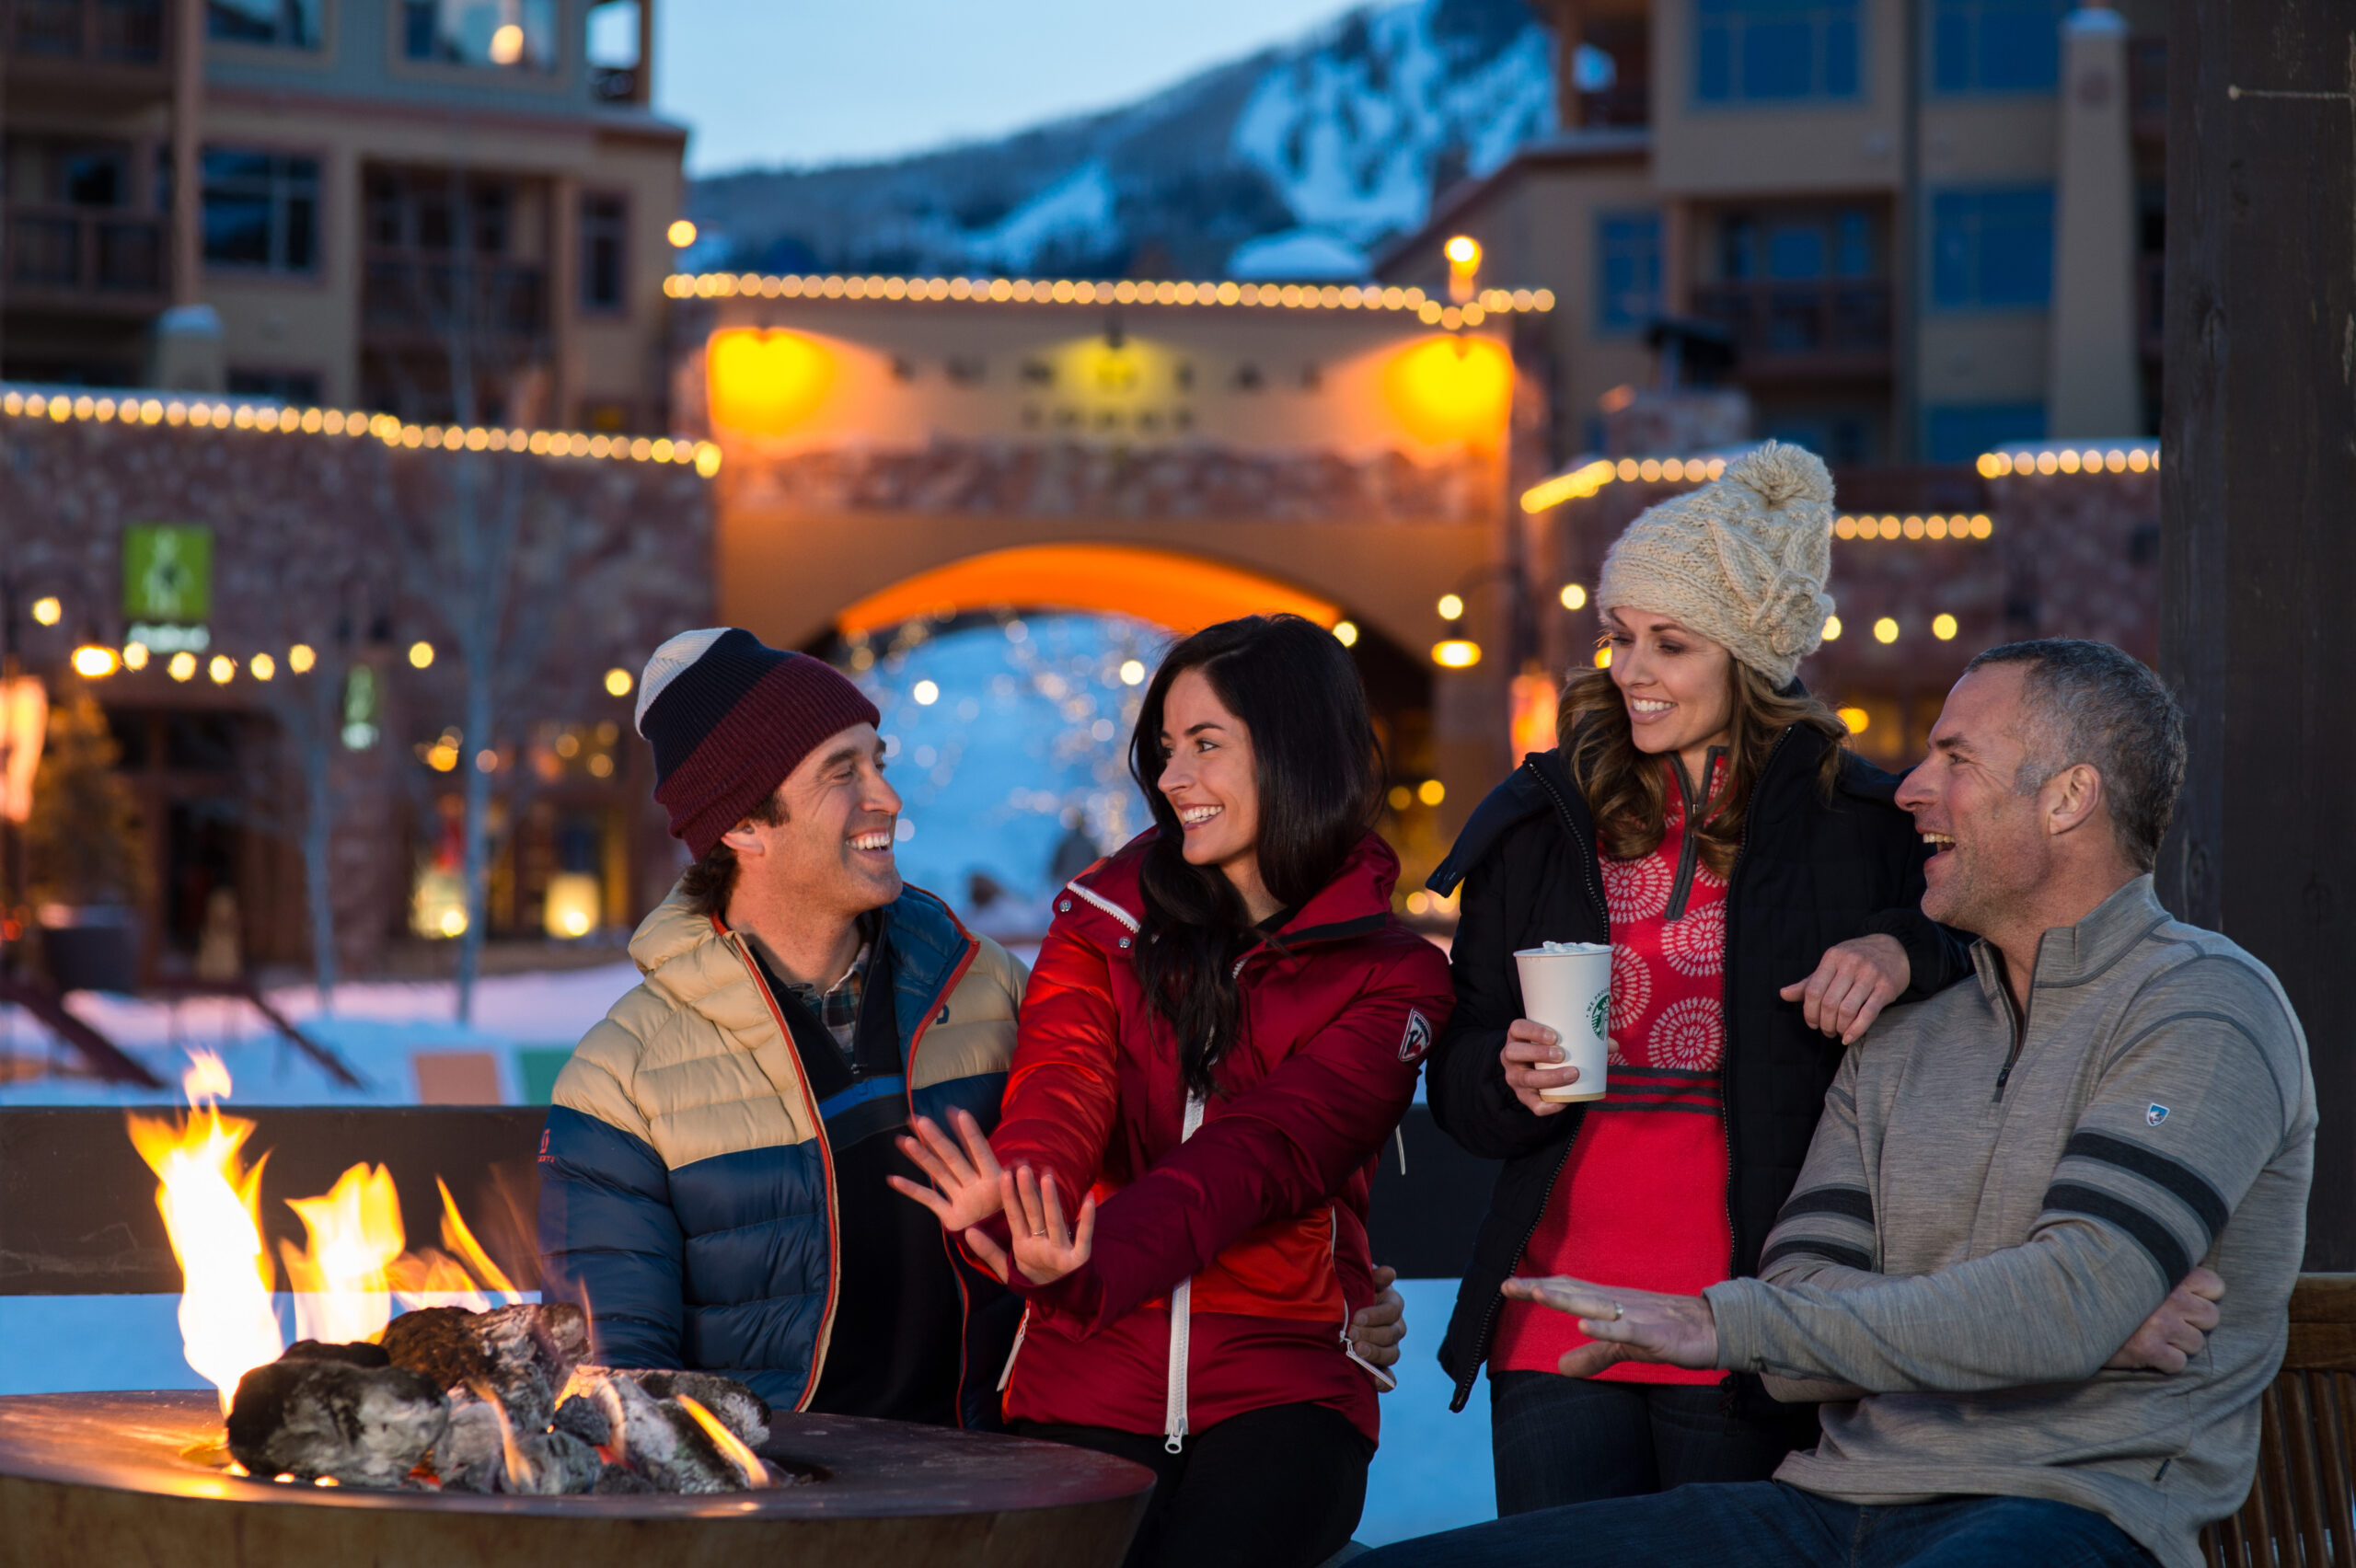 Group of Friends by the Fire at Canyons Village in Park City Utah